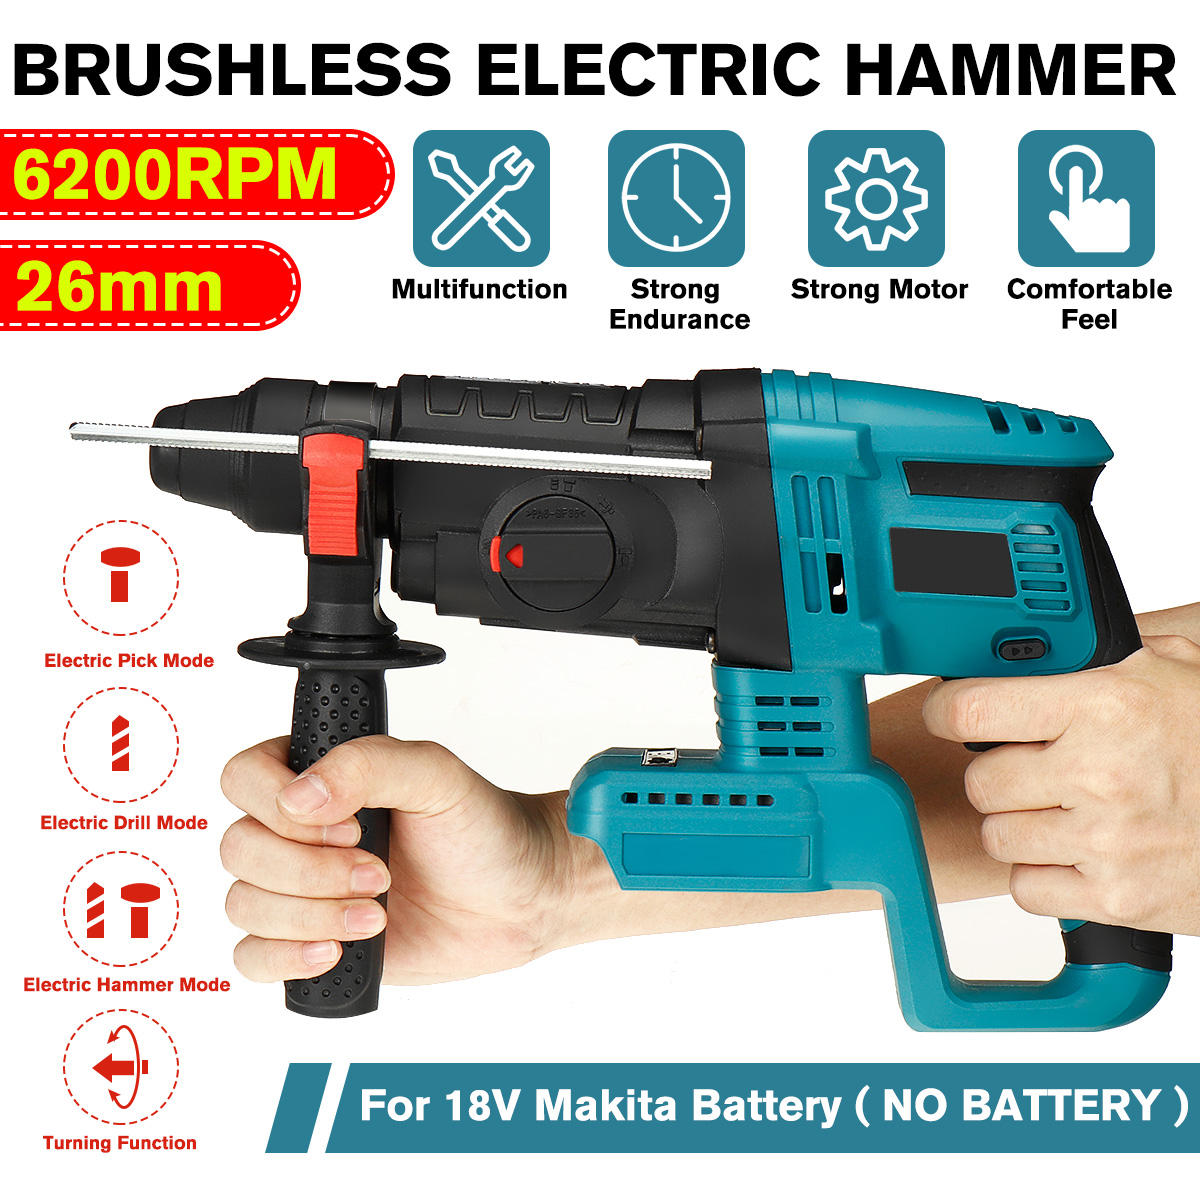 Drillpro 4 Function Brushless Cordless Electric Rotary Hammer Drill Rechargeable Hammer 26mm Impact Drill for 18V Makita Battery